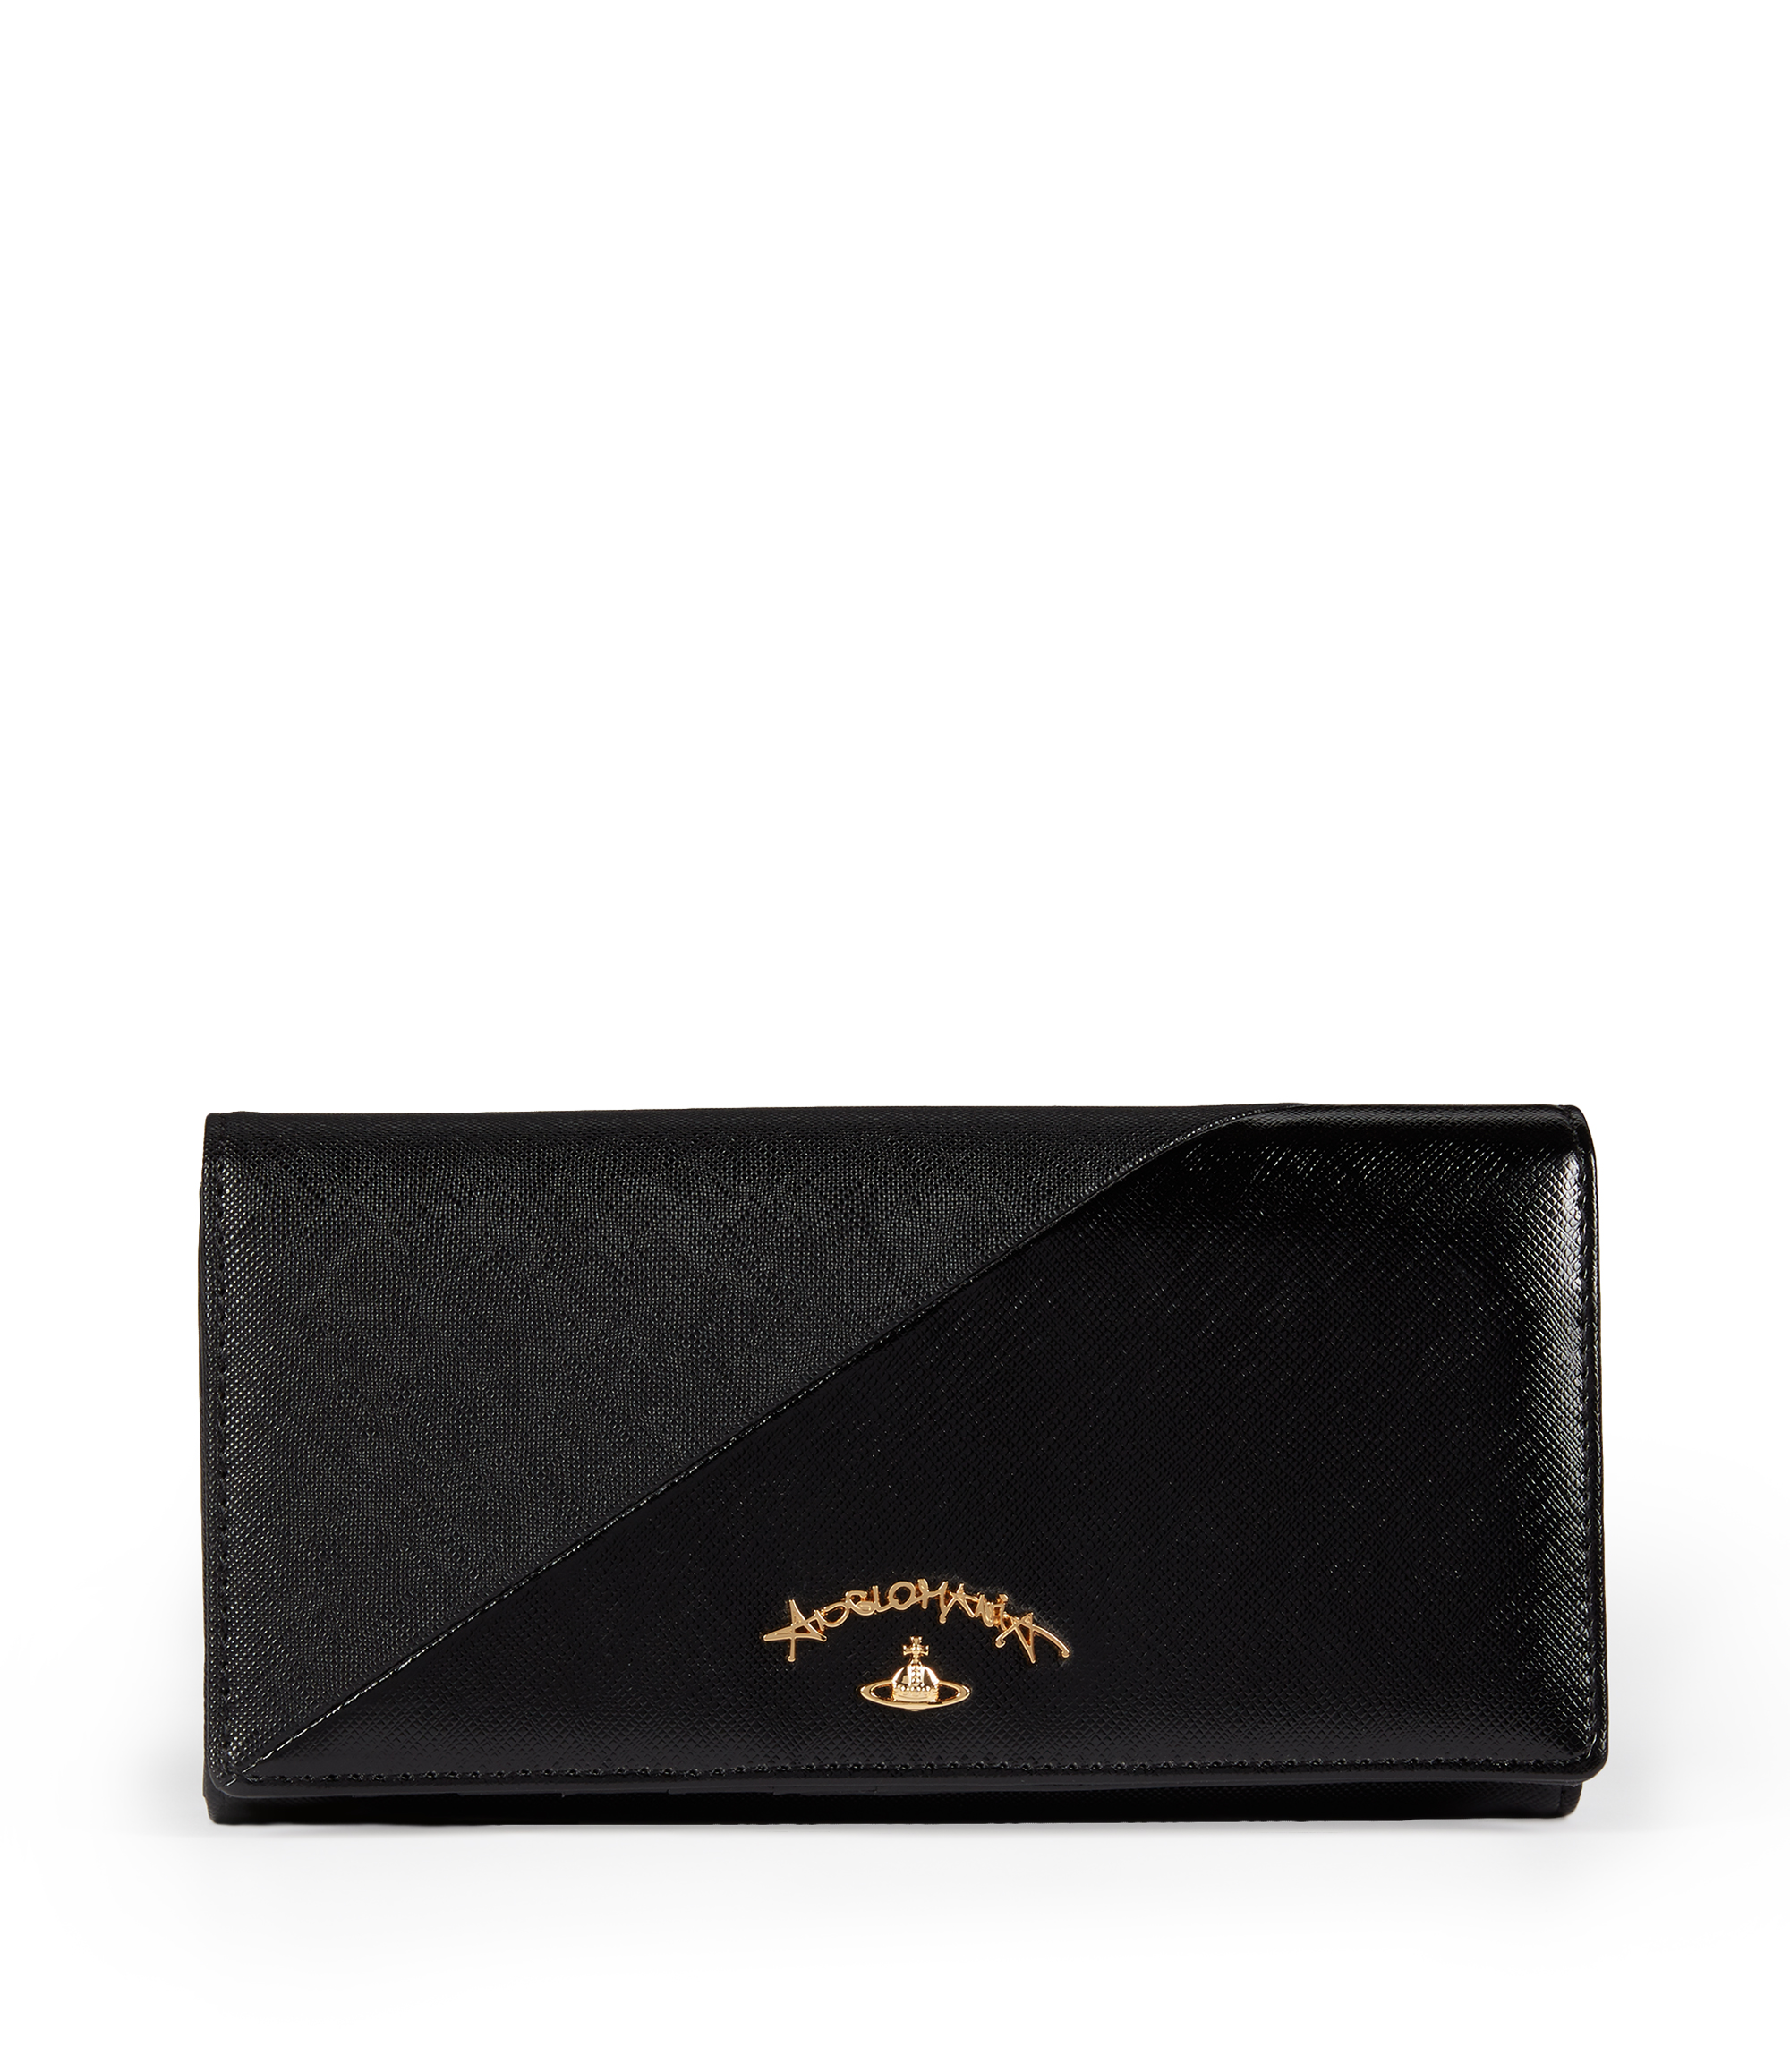 Vivienne Westwood Black Liverpool Purse 1032